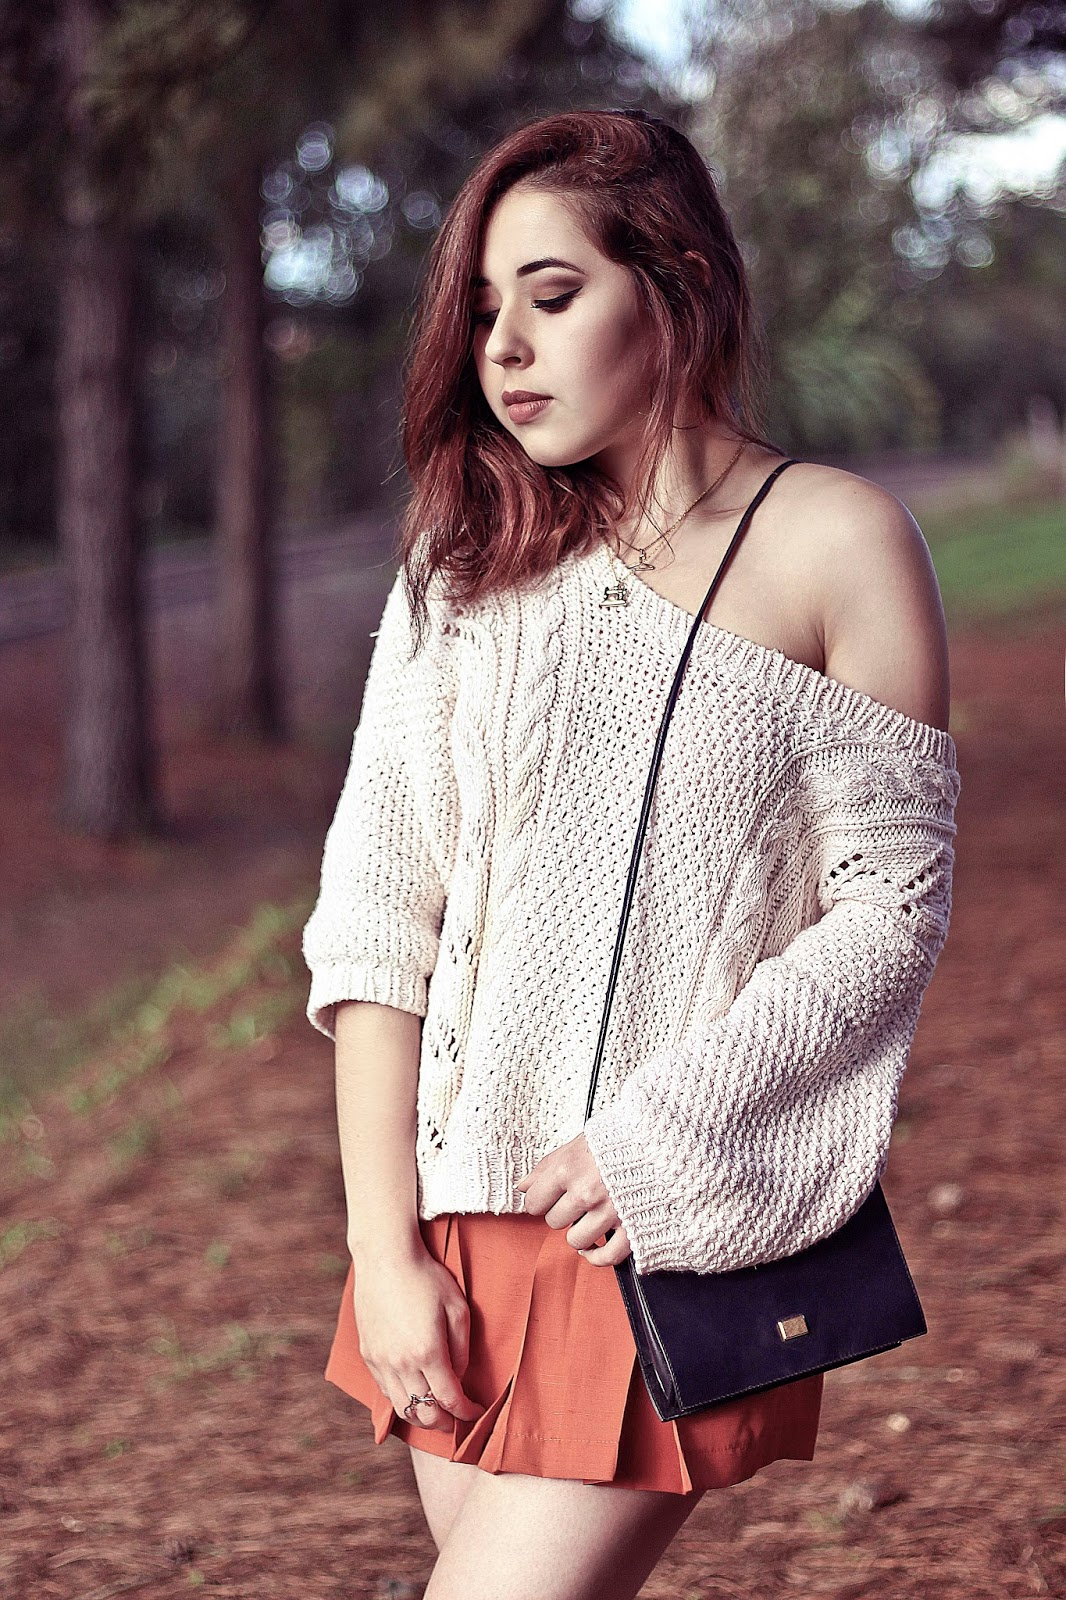 brazilian connection, Gabriela Souza, dumond, ootd, outfit, brazil, fashion, flared skirt, knitting, tricot, key piece, winter, culture and trend